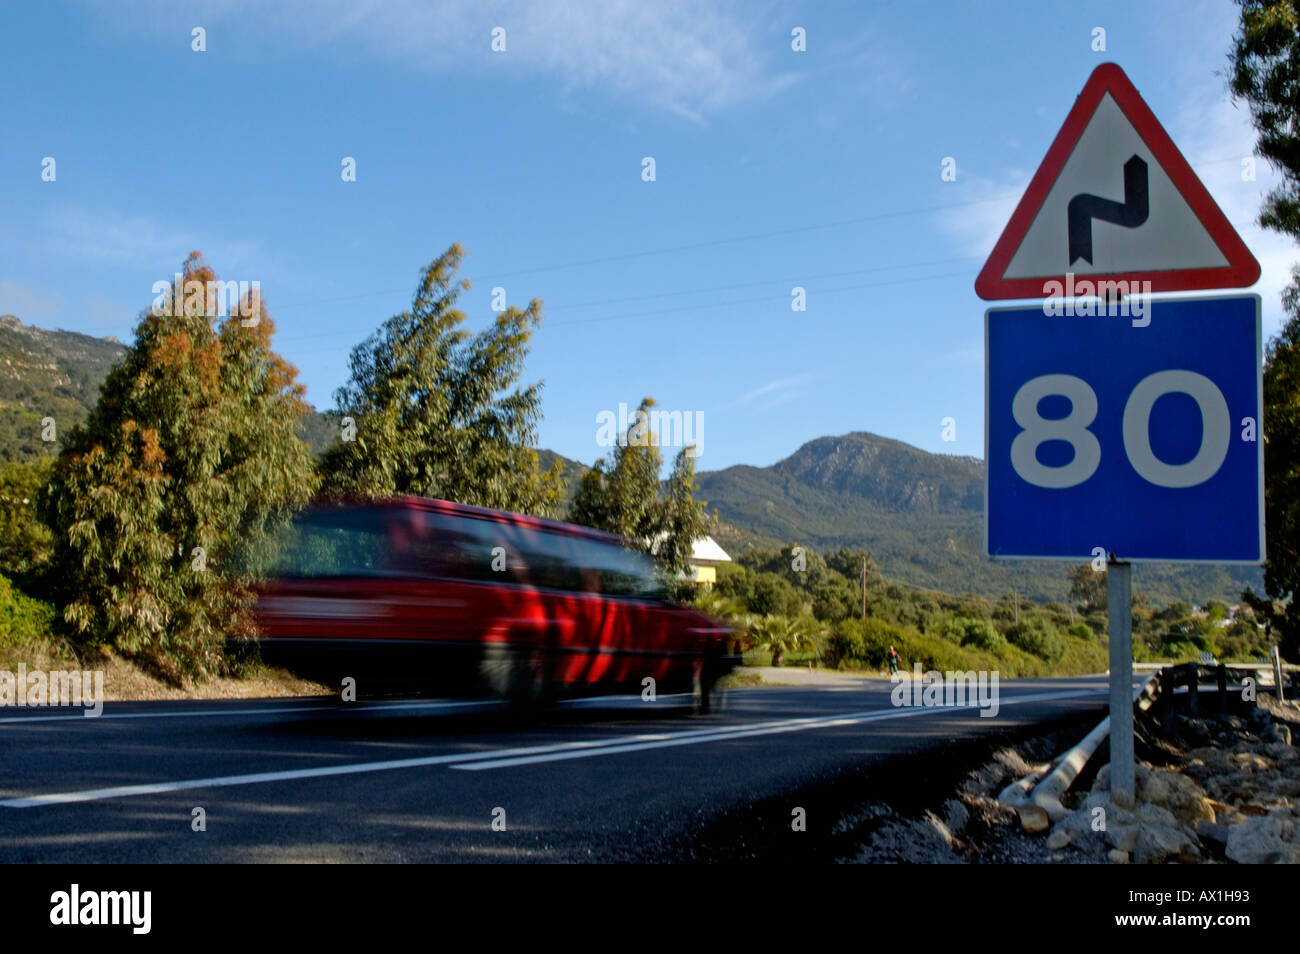 Speeding car on a highway with speed limit road signs at 80 km per hour and warning of bends in the road, Spain - Stock Image